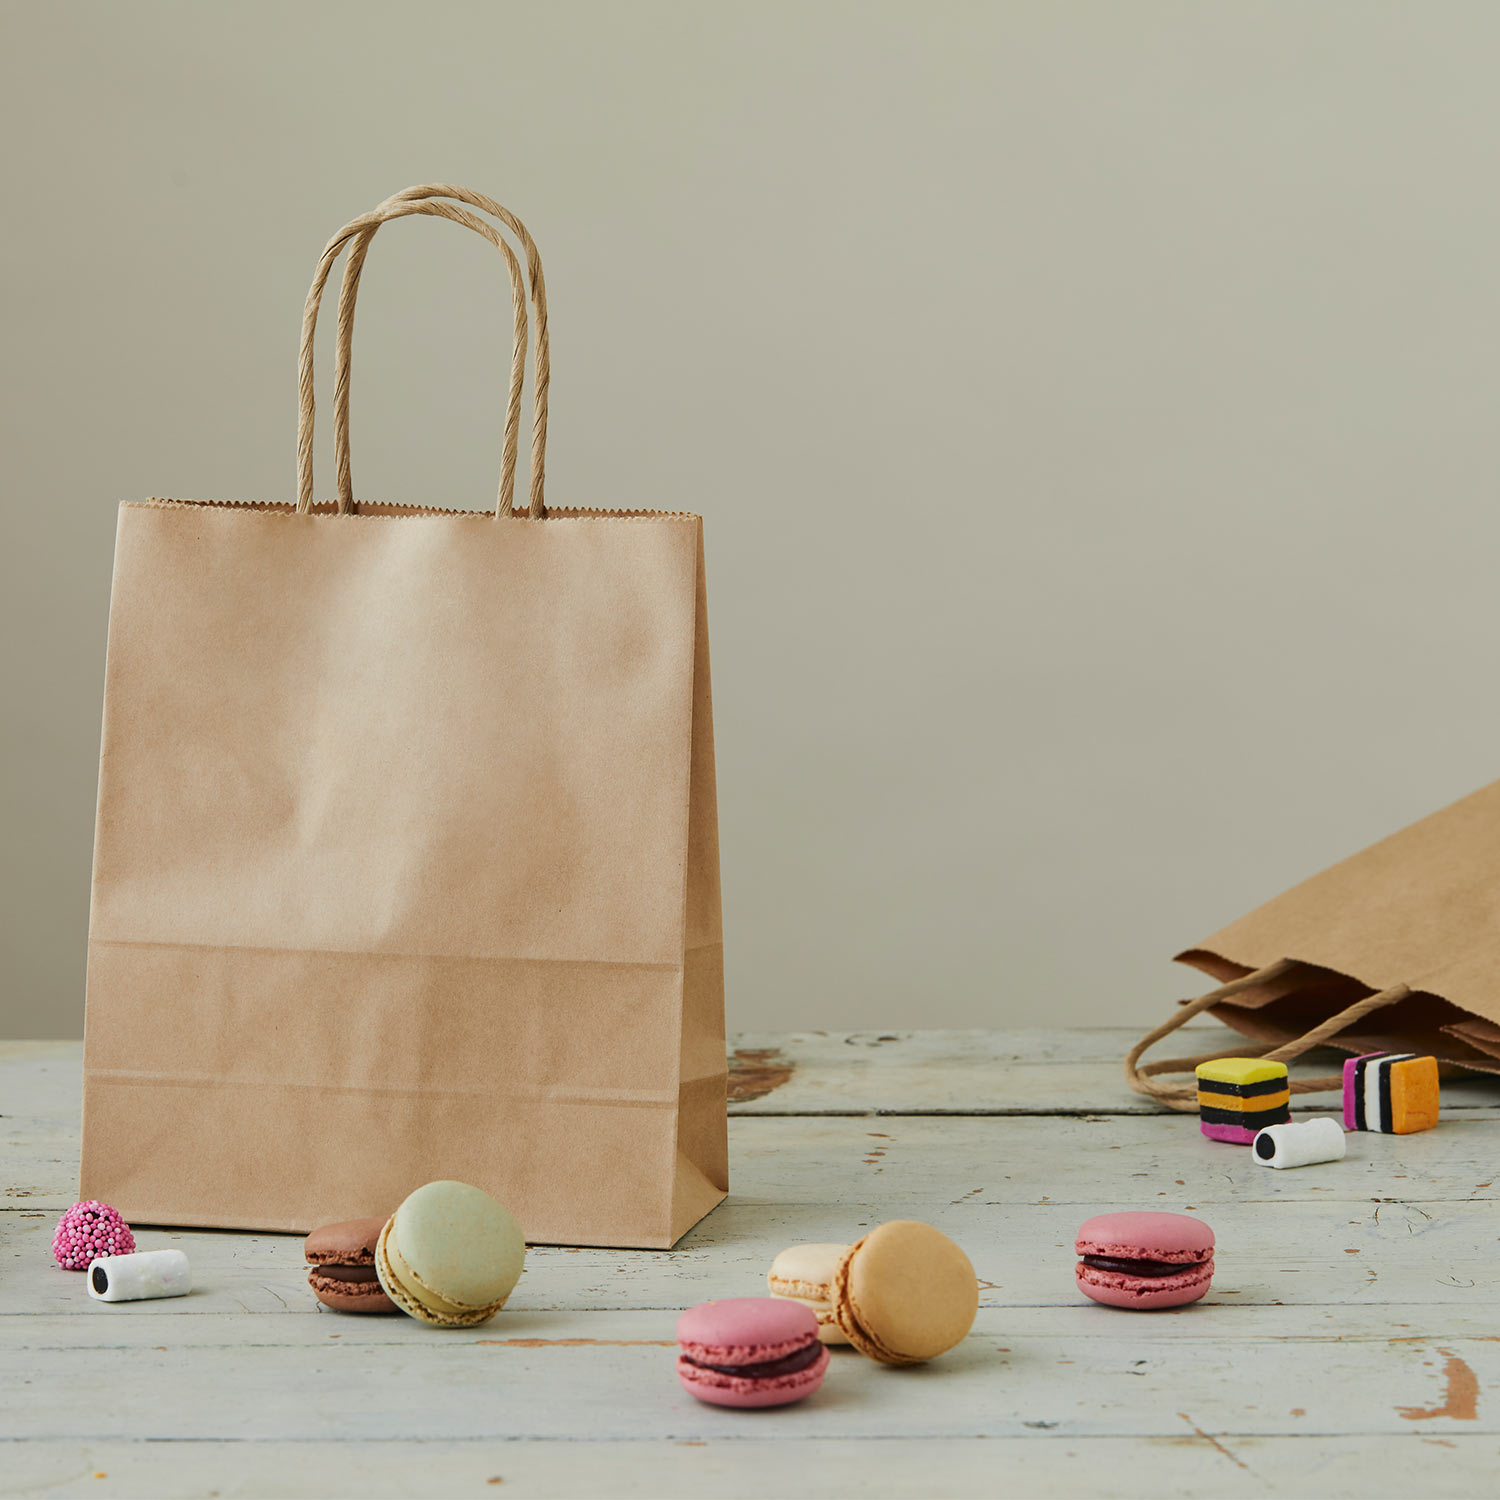 Image of paper bag used to carry sweet treats